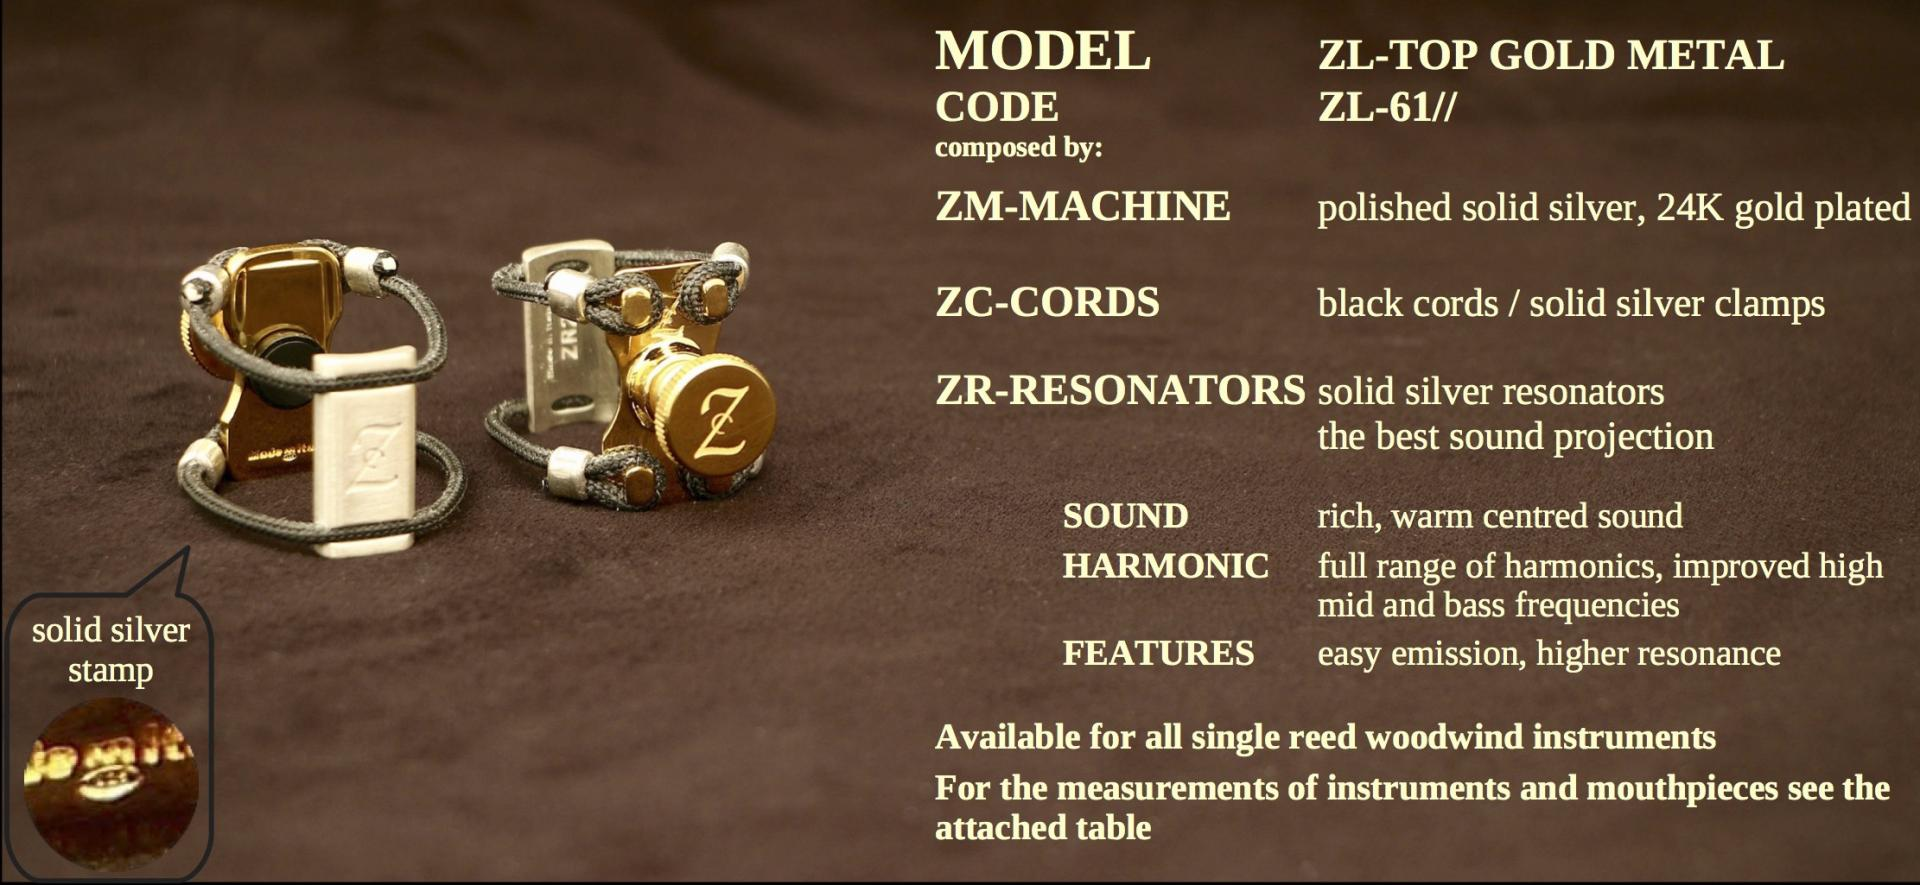 ZAC LIGATURE MODEL: ZL-GOLD METAL